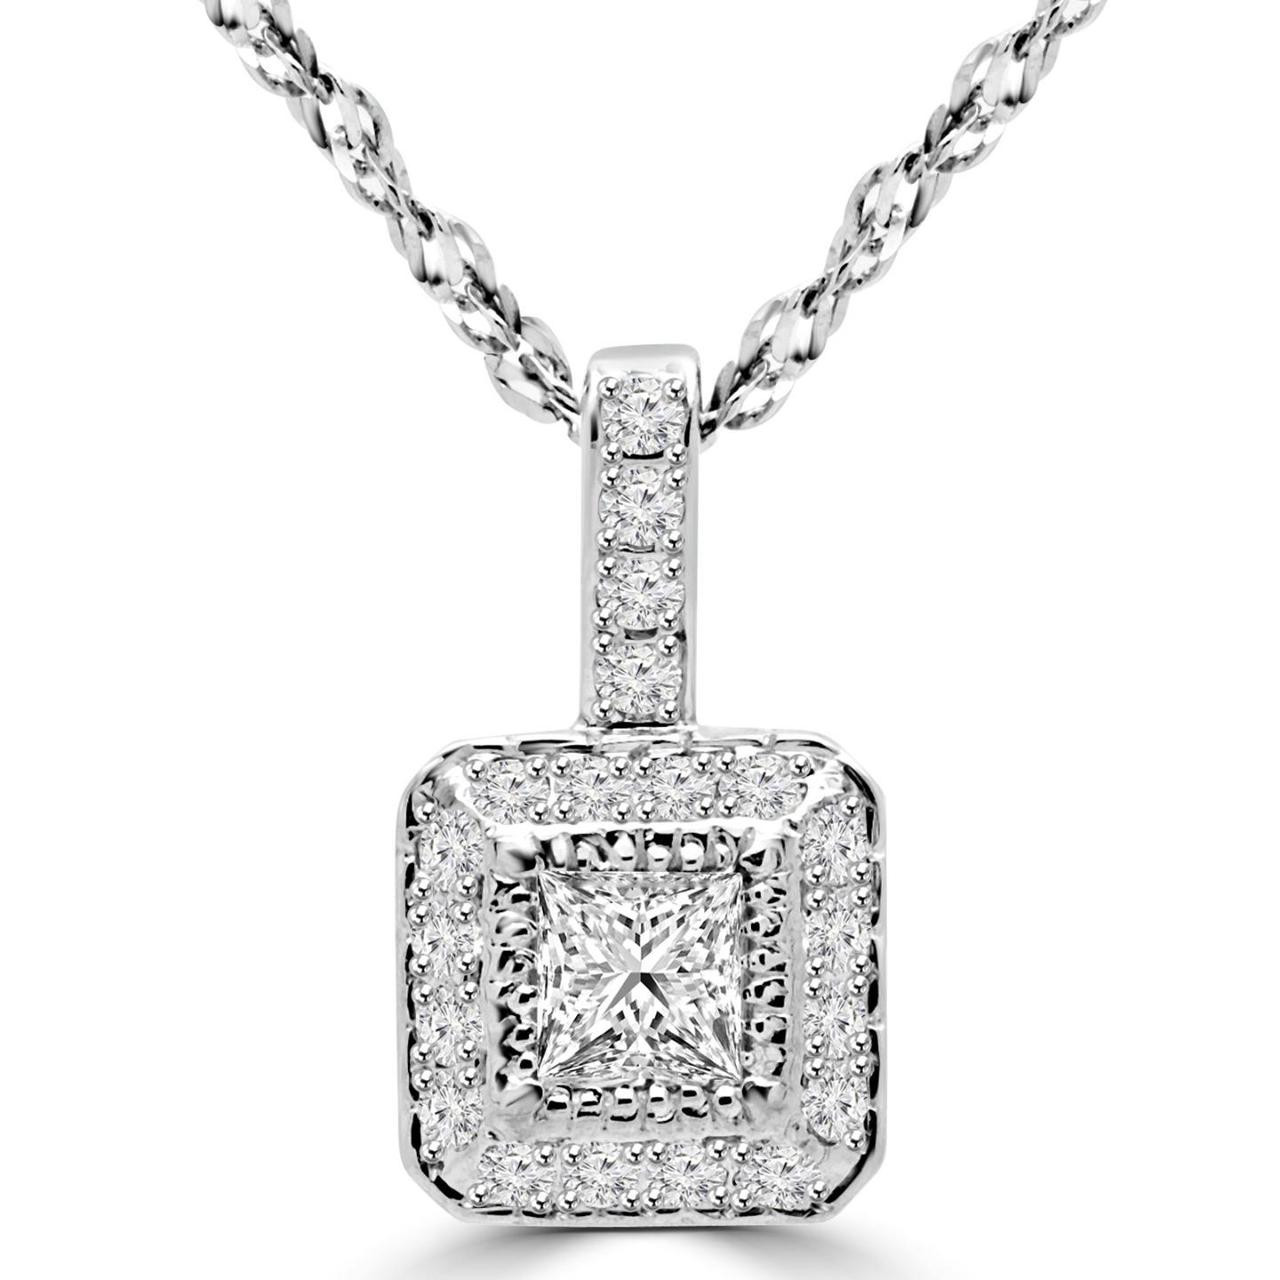 made on cttw over overstock princess pendant cut with zirconia shipping swarovski silver jewelry free orders watches product solitaire sterling